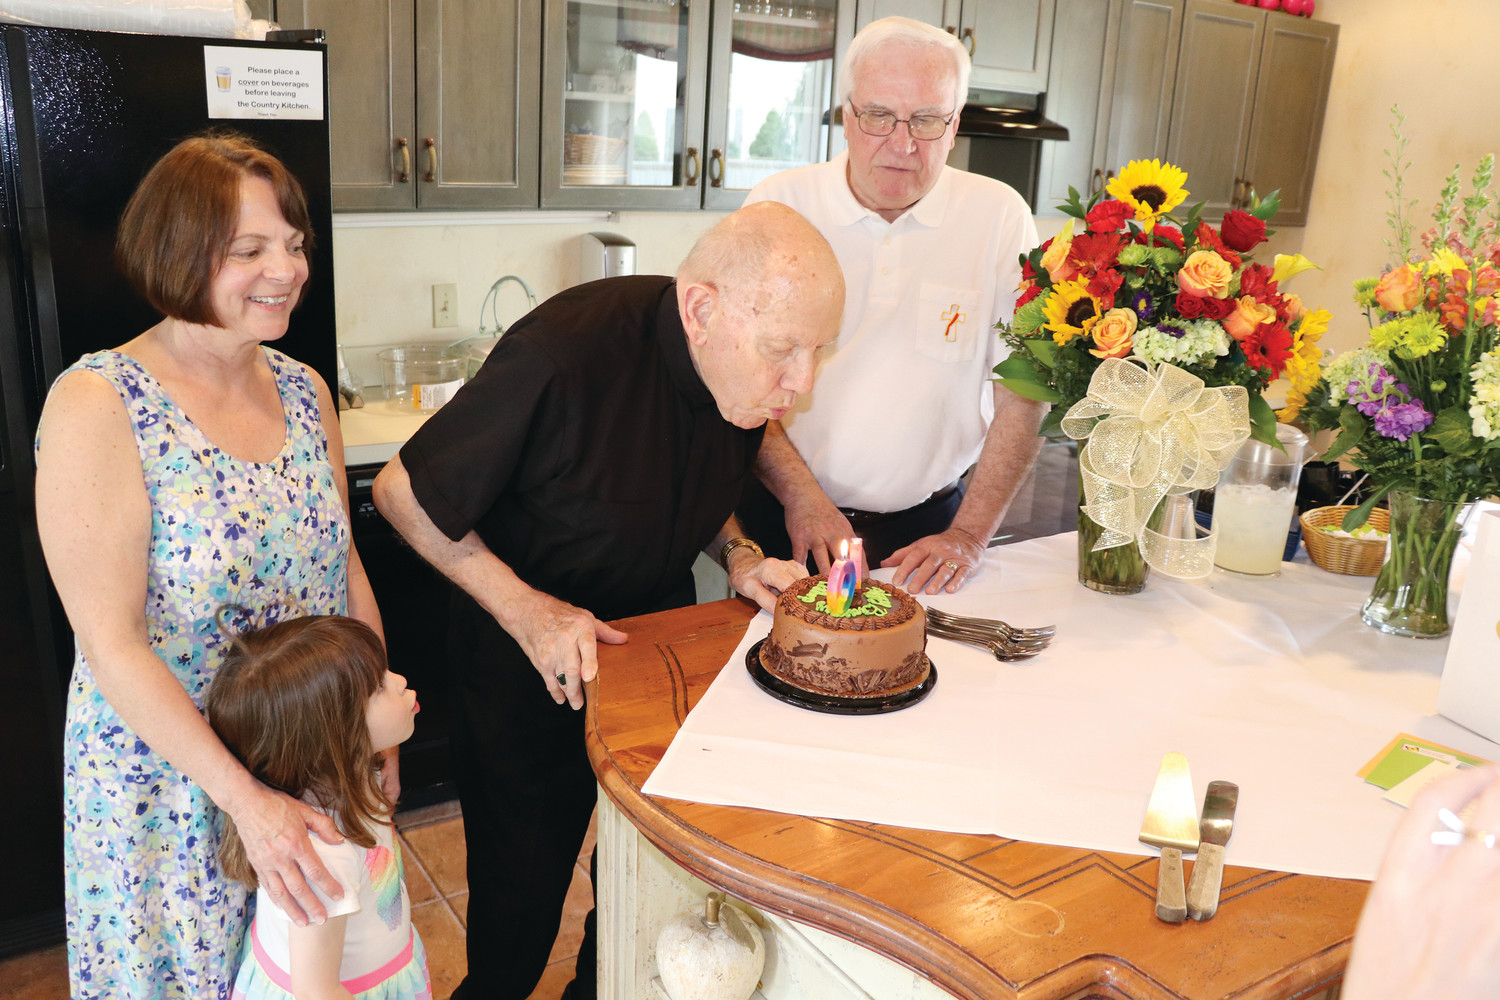 Bishop Emeritus Louis E Gelineau Celebrates 90th Birthday With